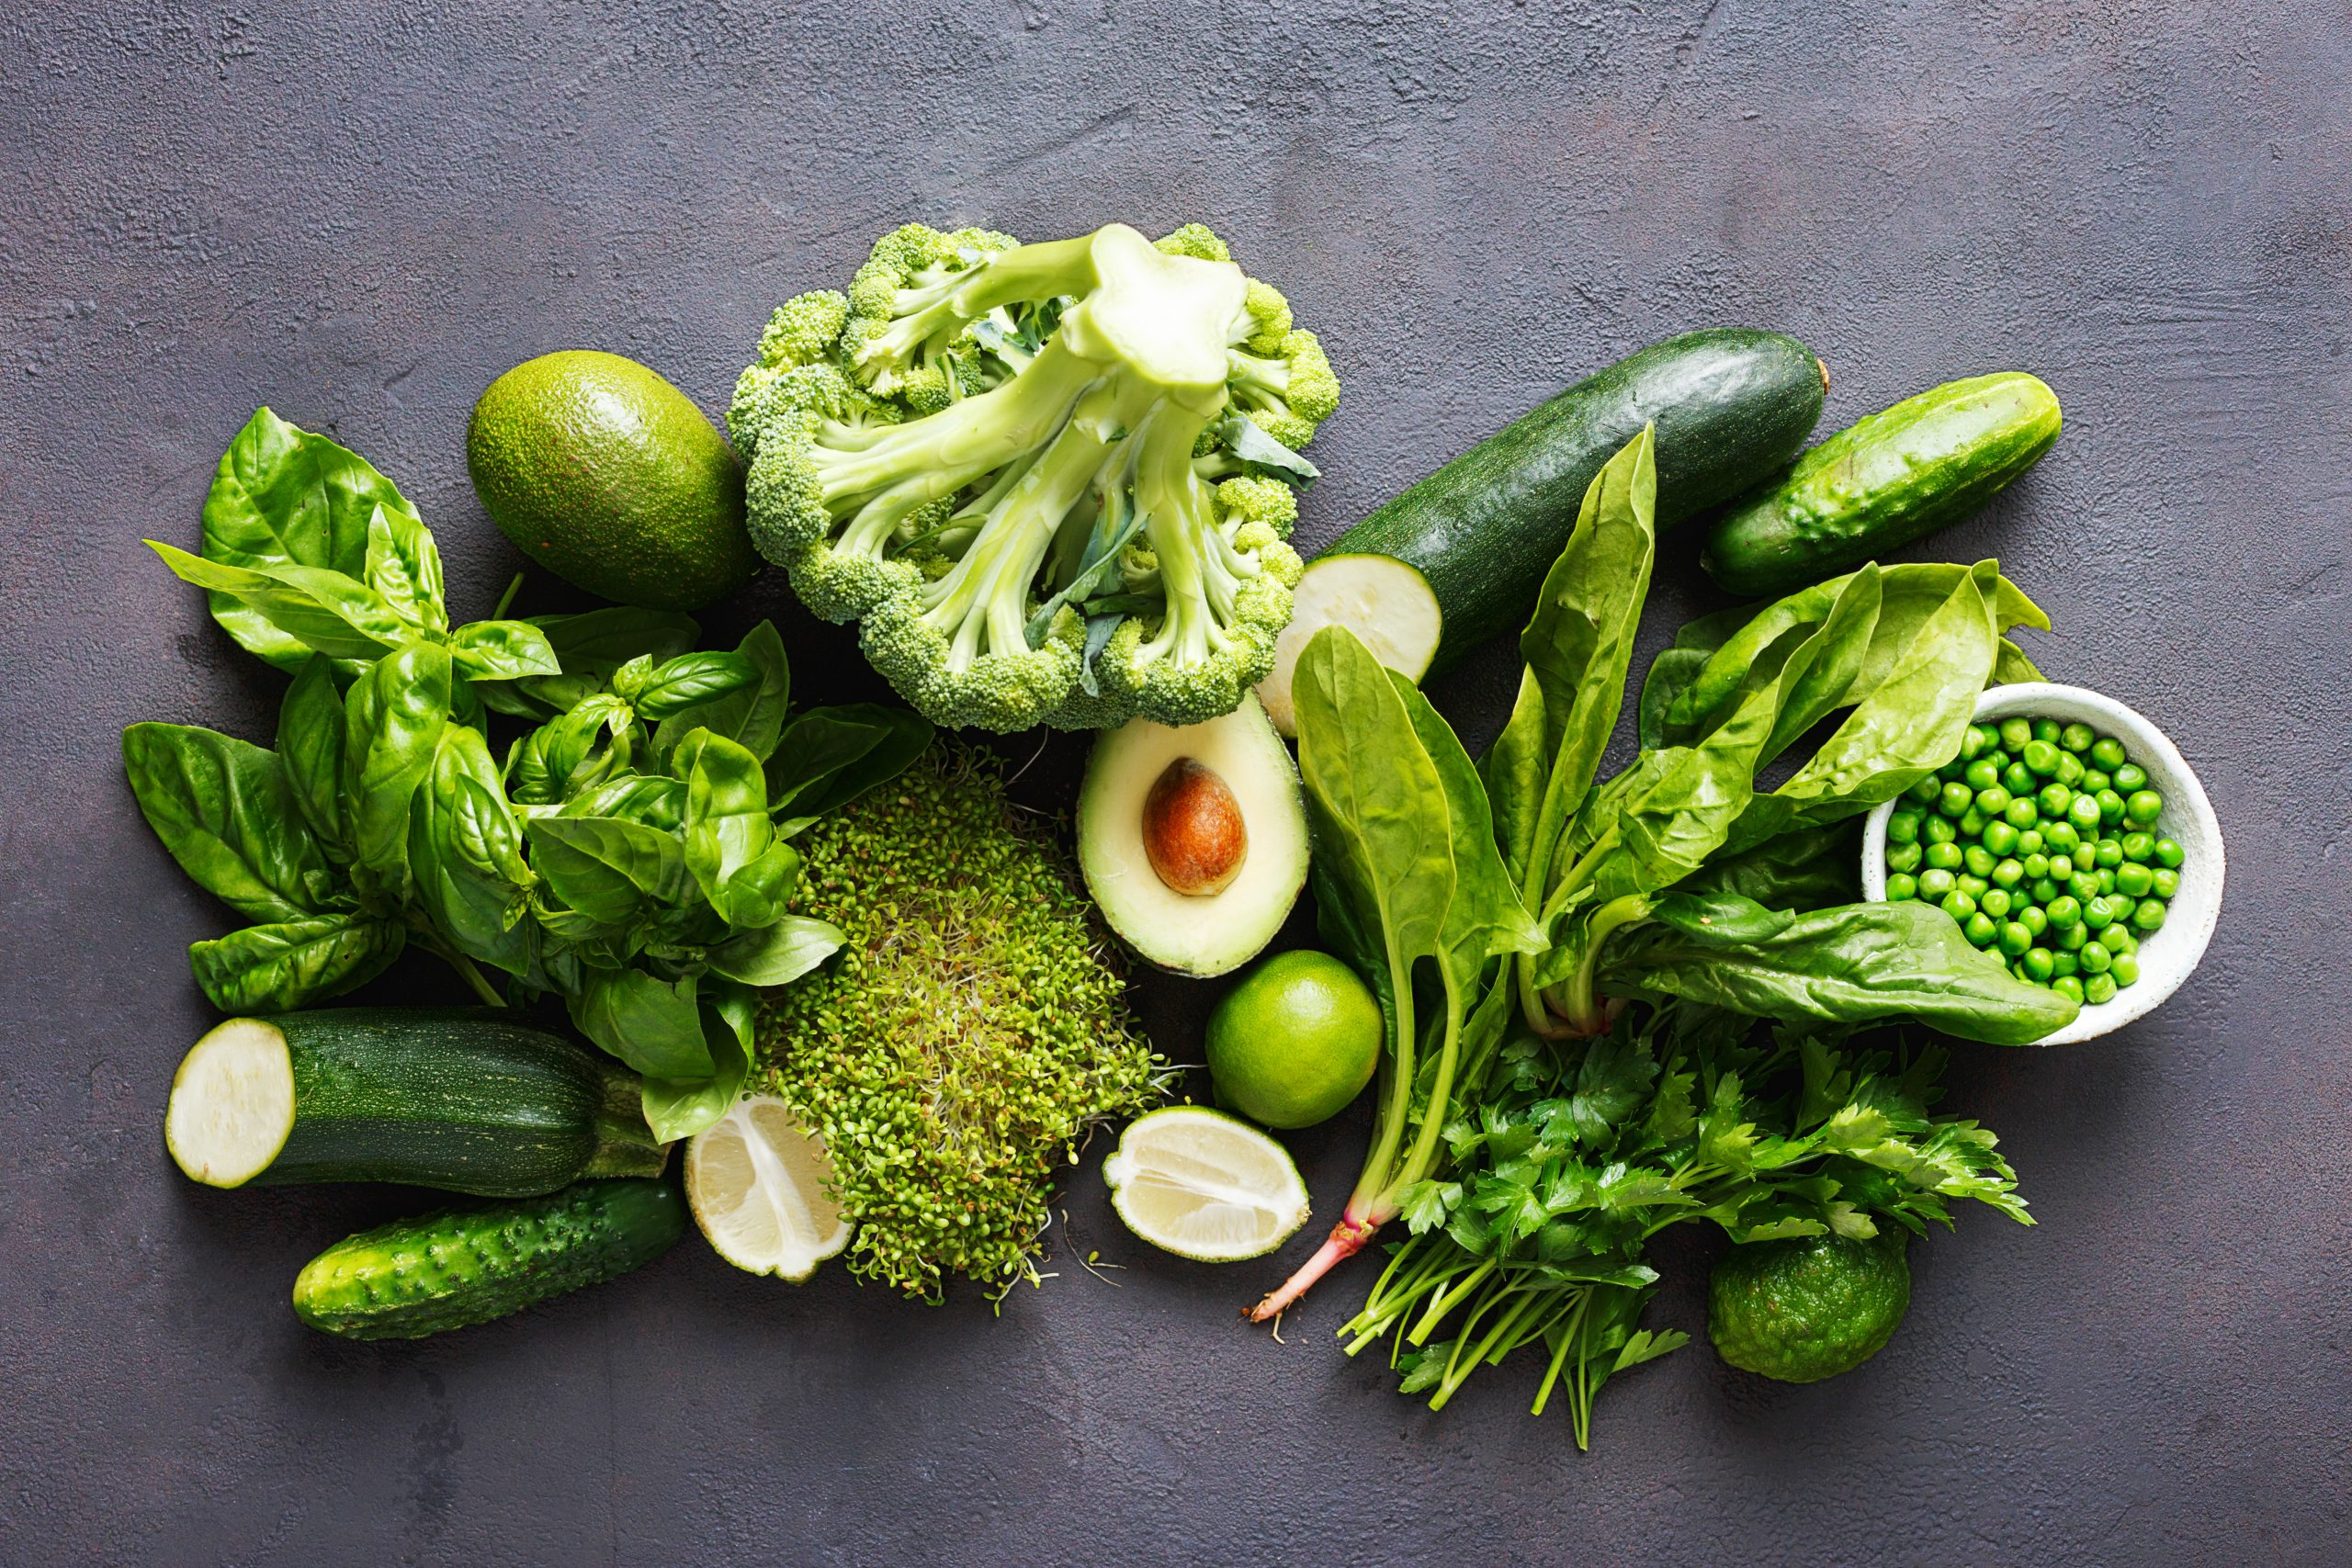 The Scientific Reason Why You May Not Like Green Veg